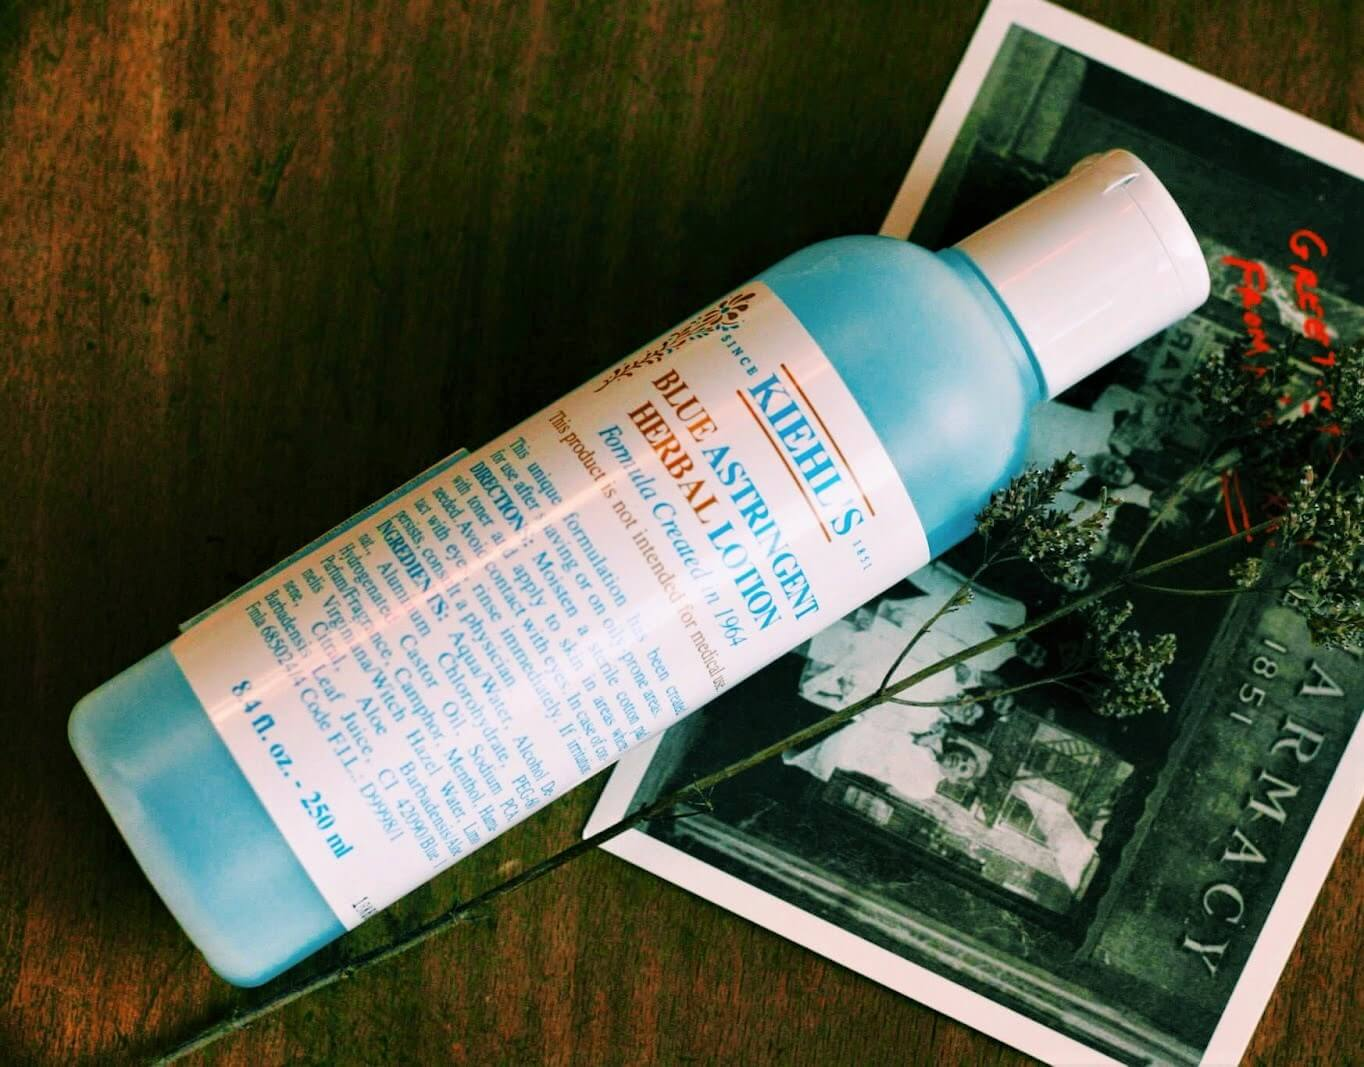 nuoc-hoa-hong-kiehl-blue-astringent-herbal-lotion-01